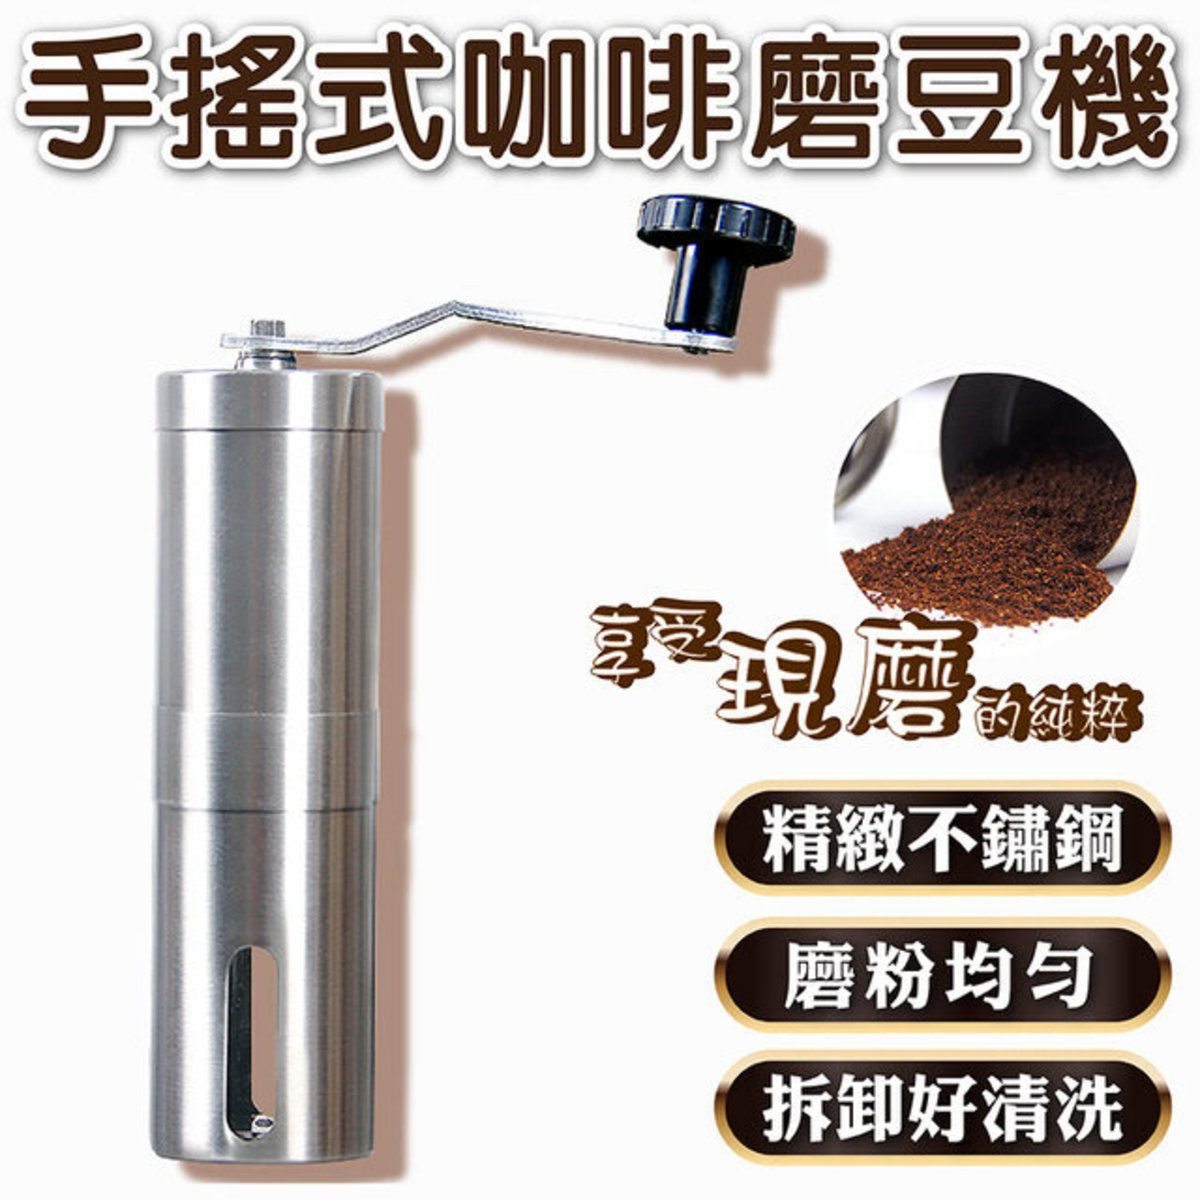 Hand-operated coffee grinder